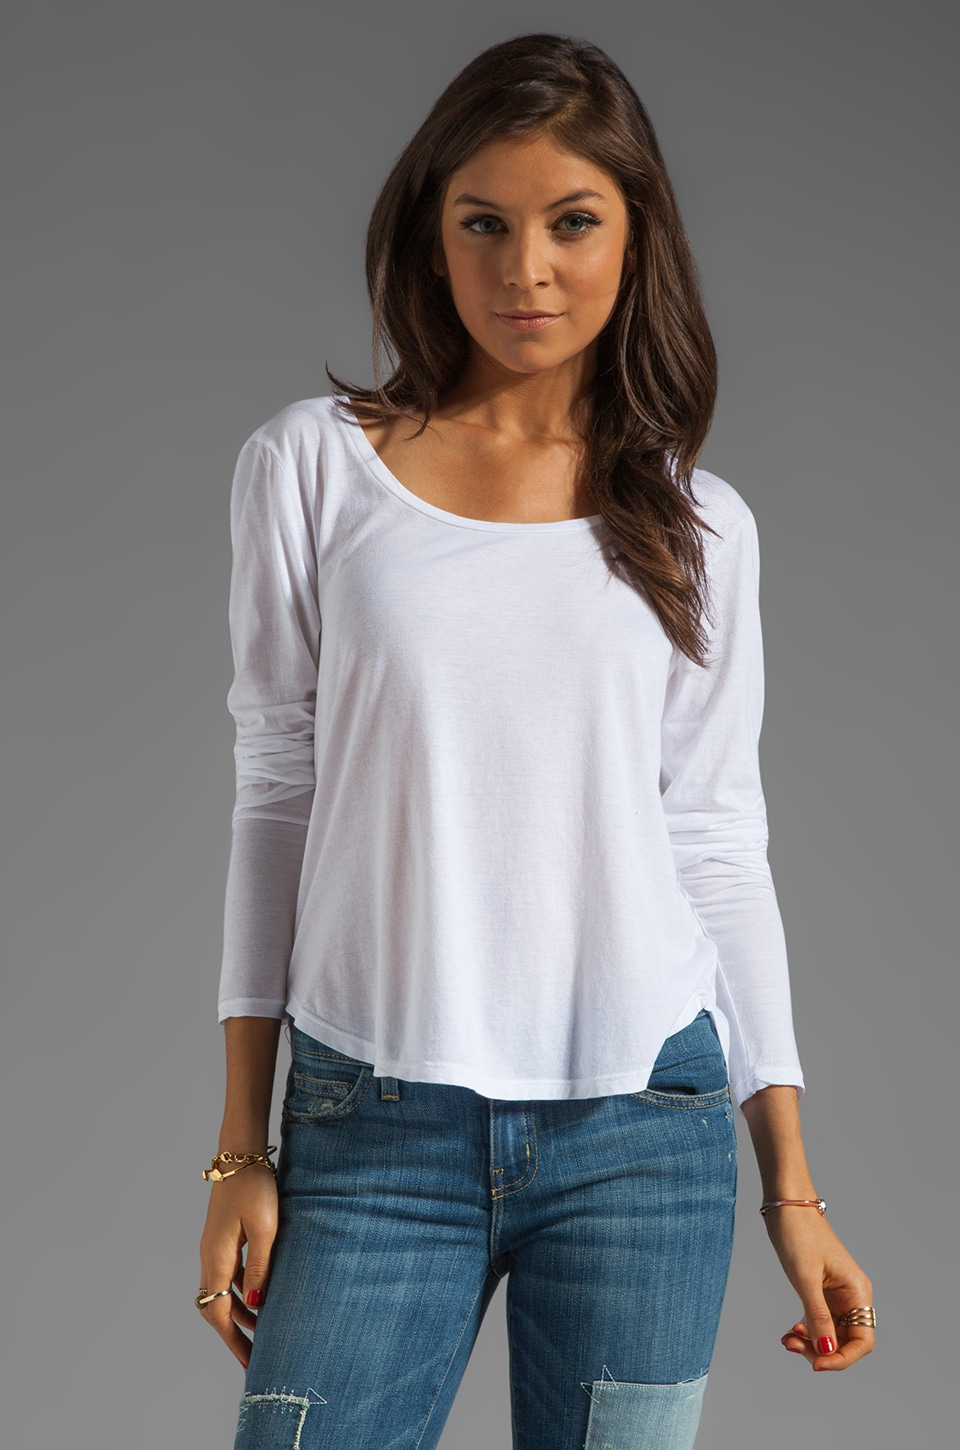 AG Adriano Goldschmied Long Sleeve Scoop Tee in White